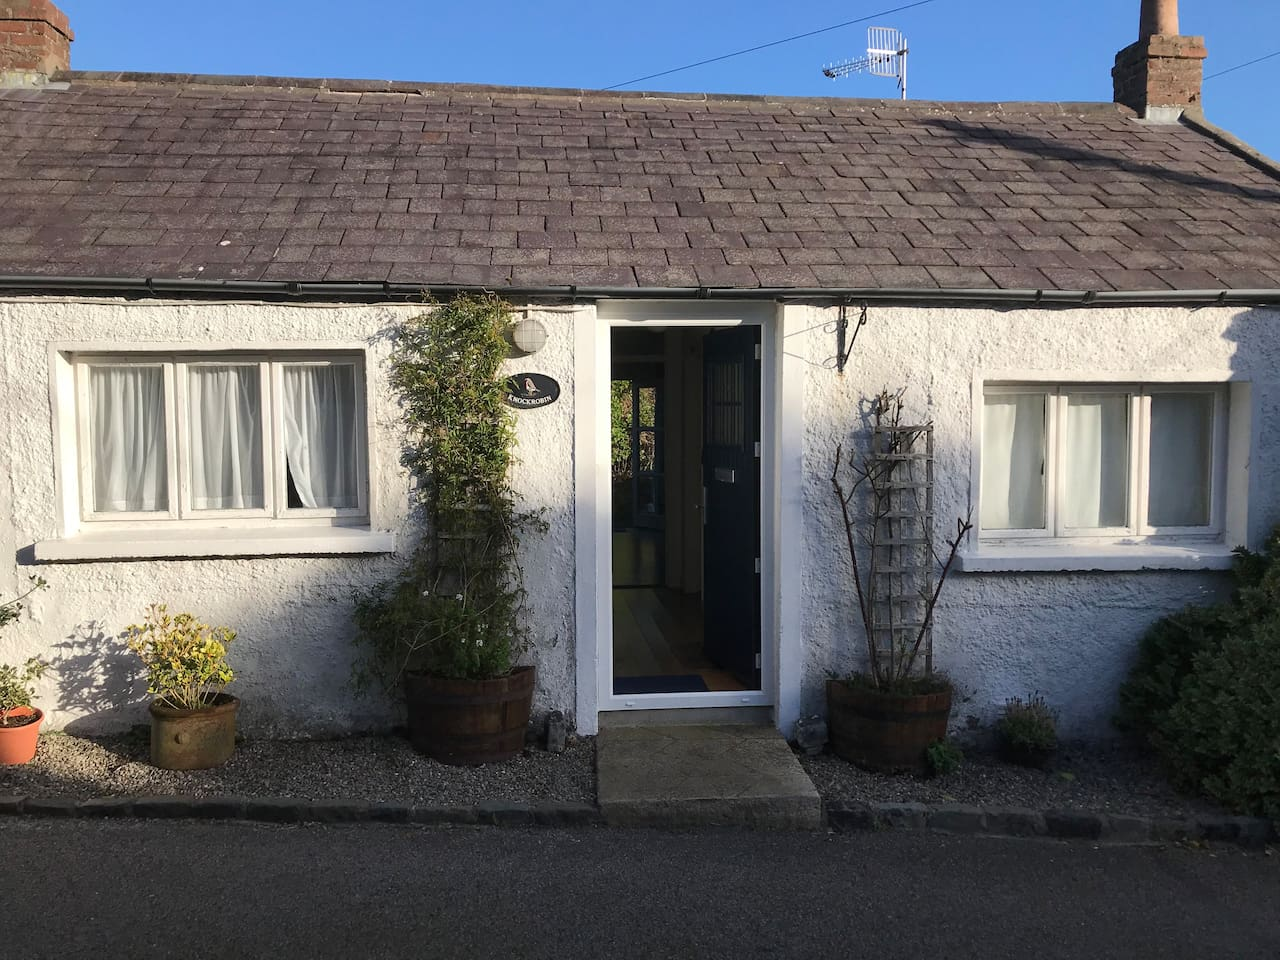 cottages rental little wild in to cottage donegal west the irish beautiful ireland wifi our dublin free on rent crowlar